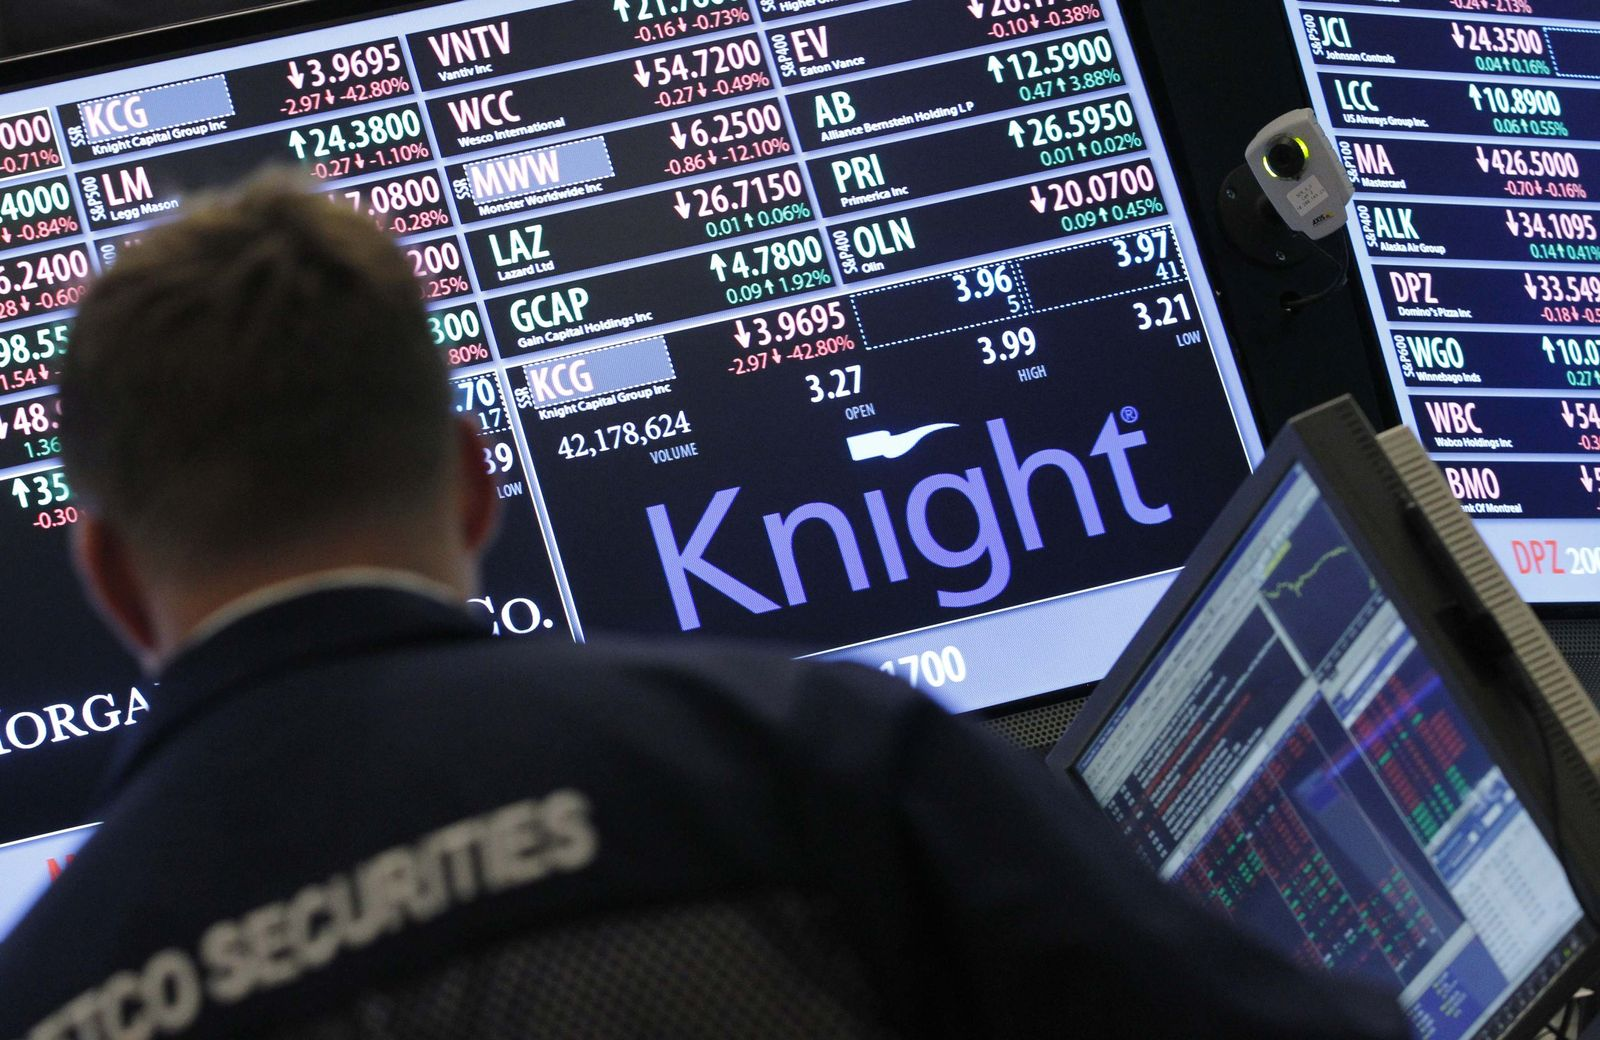 Knight Capital Group Verlust